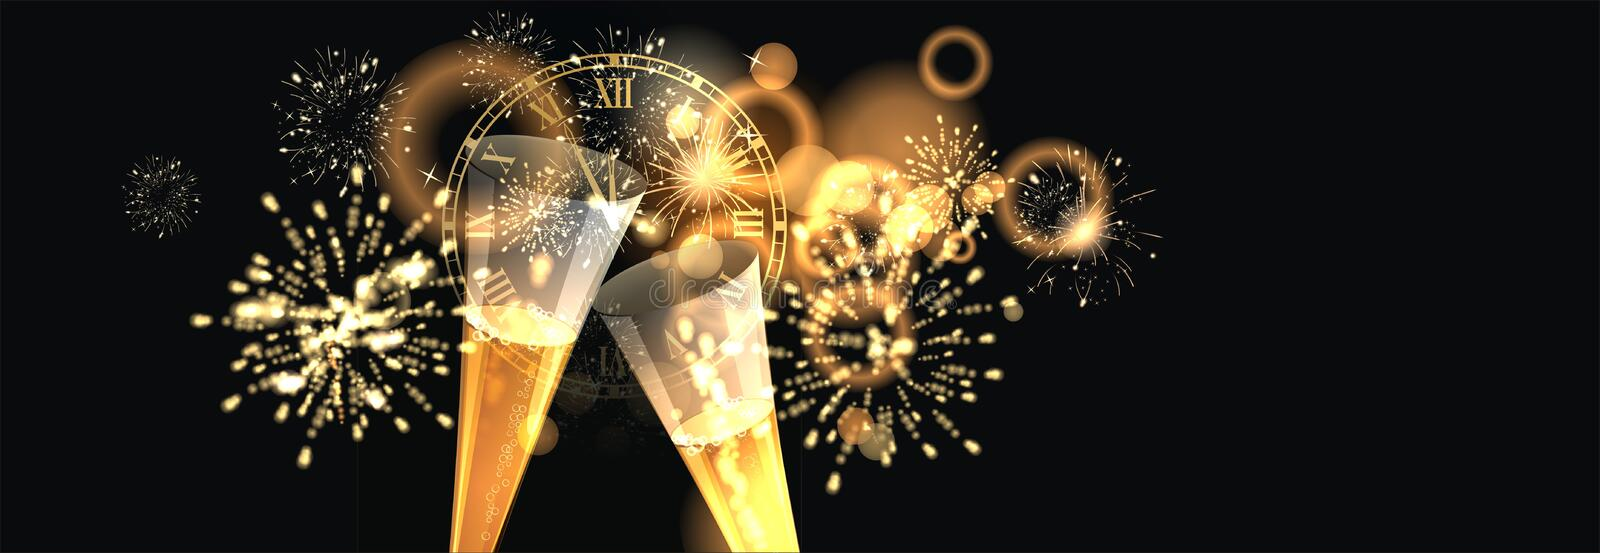 Happy New Year background with firework royalty free illustration